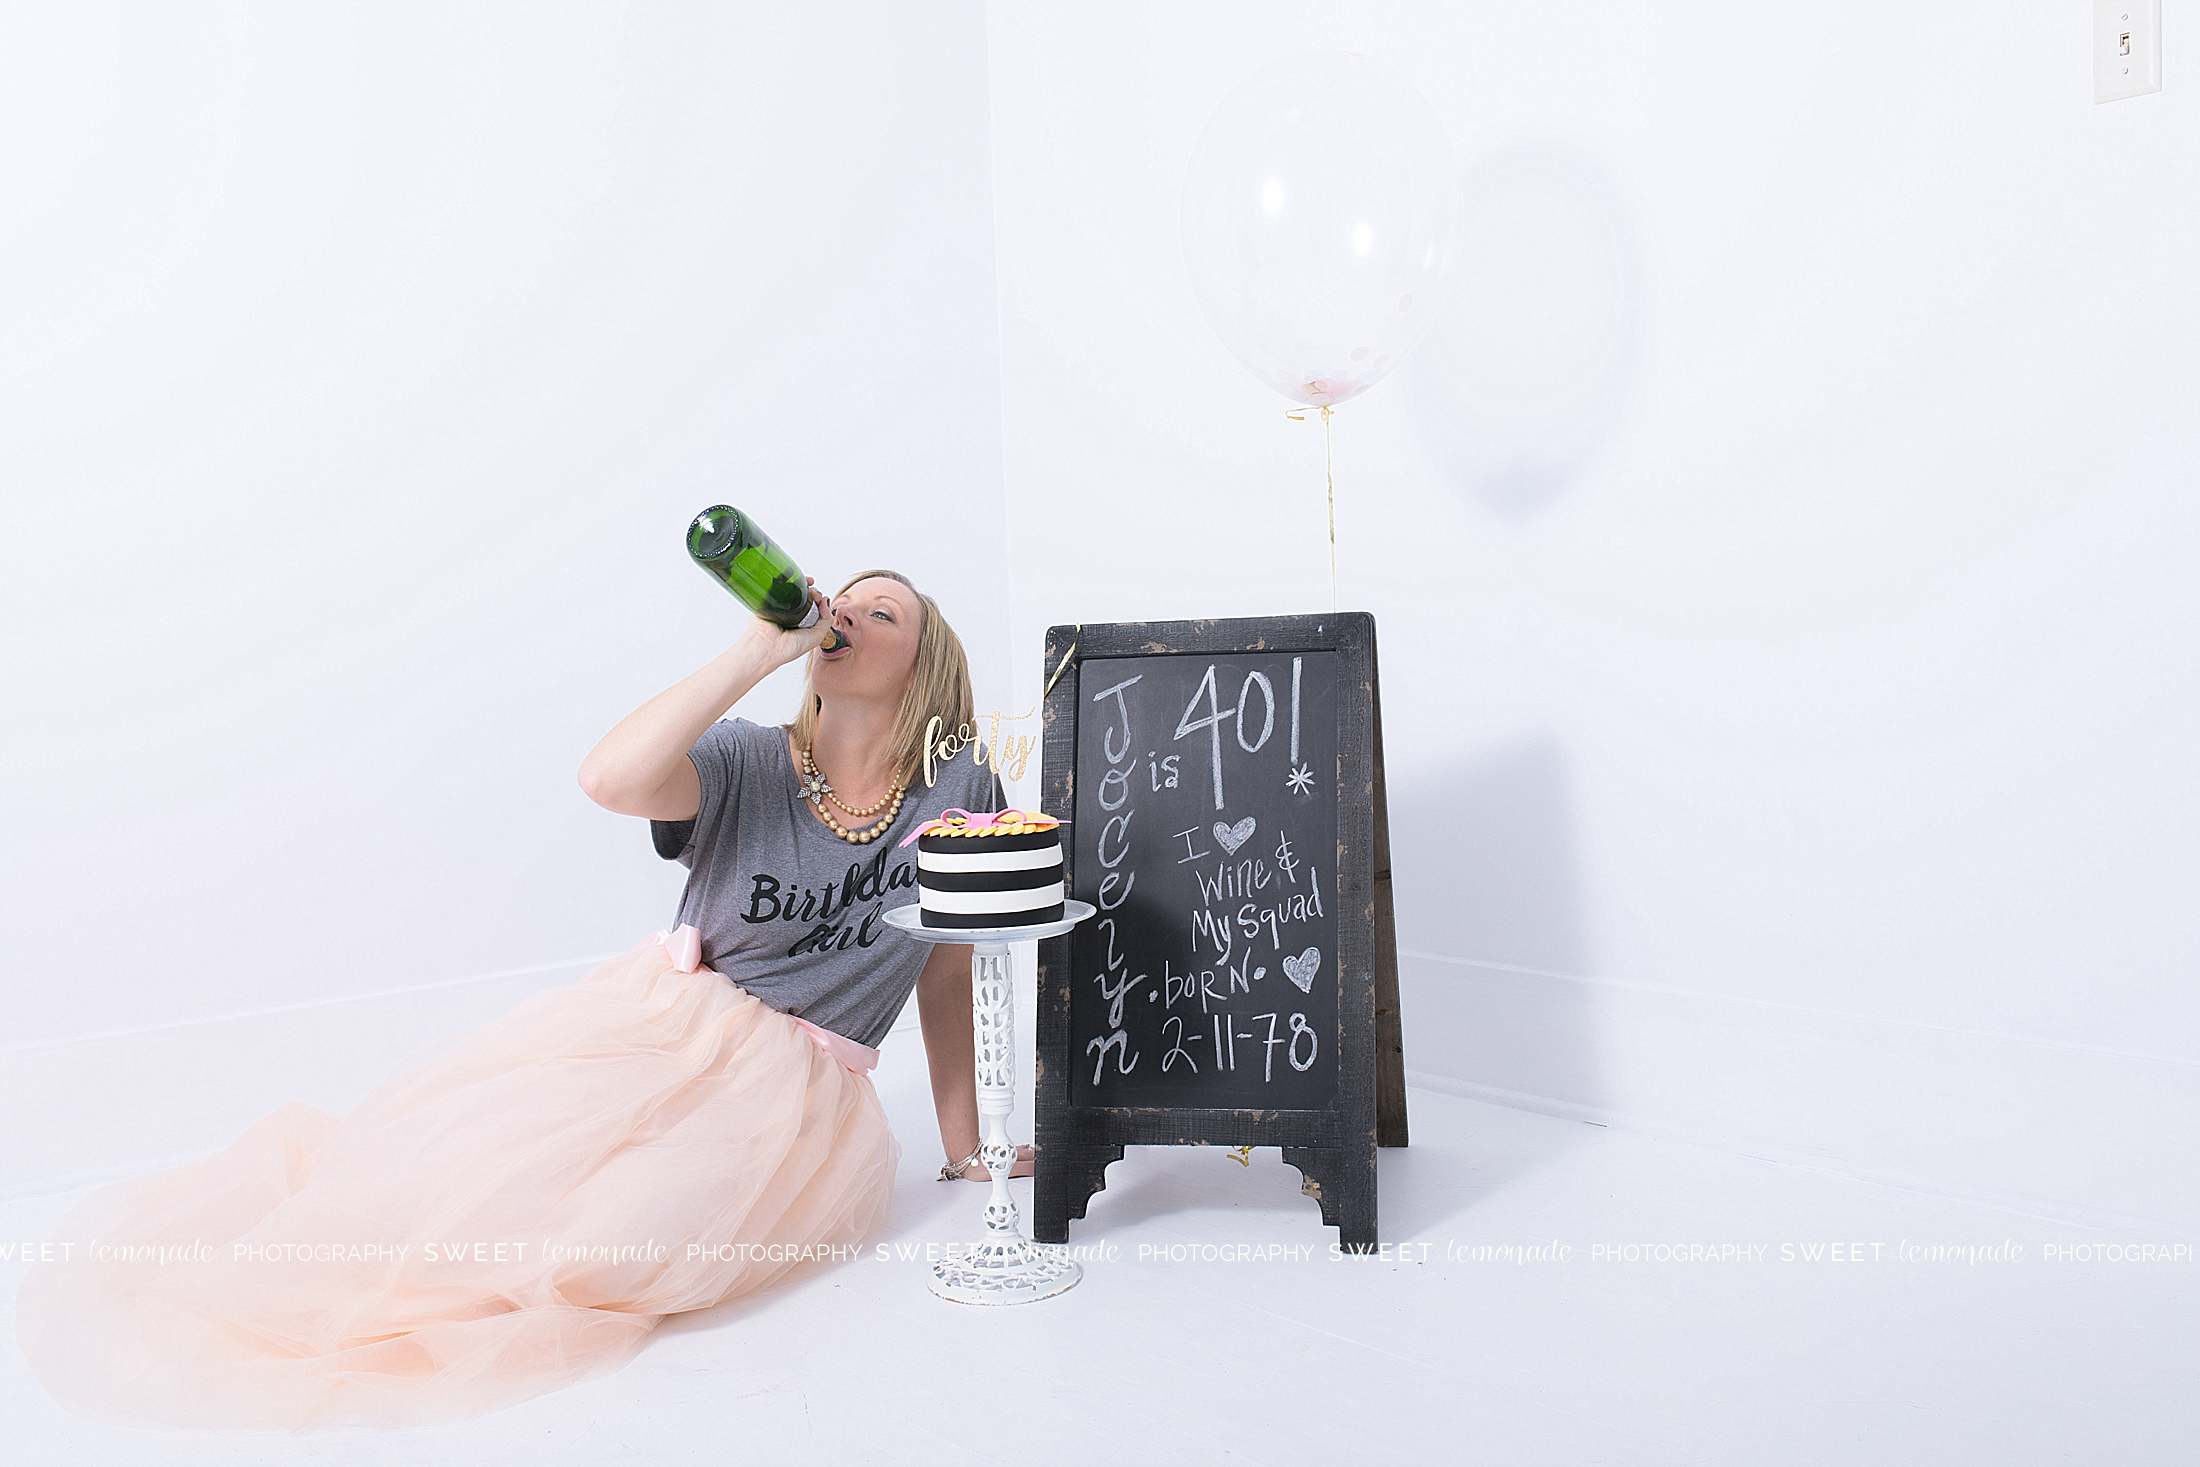 adult-cake-smash-pictures-woman-kate-spade-fondant-champagne-wine_1927.jpg